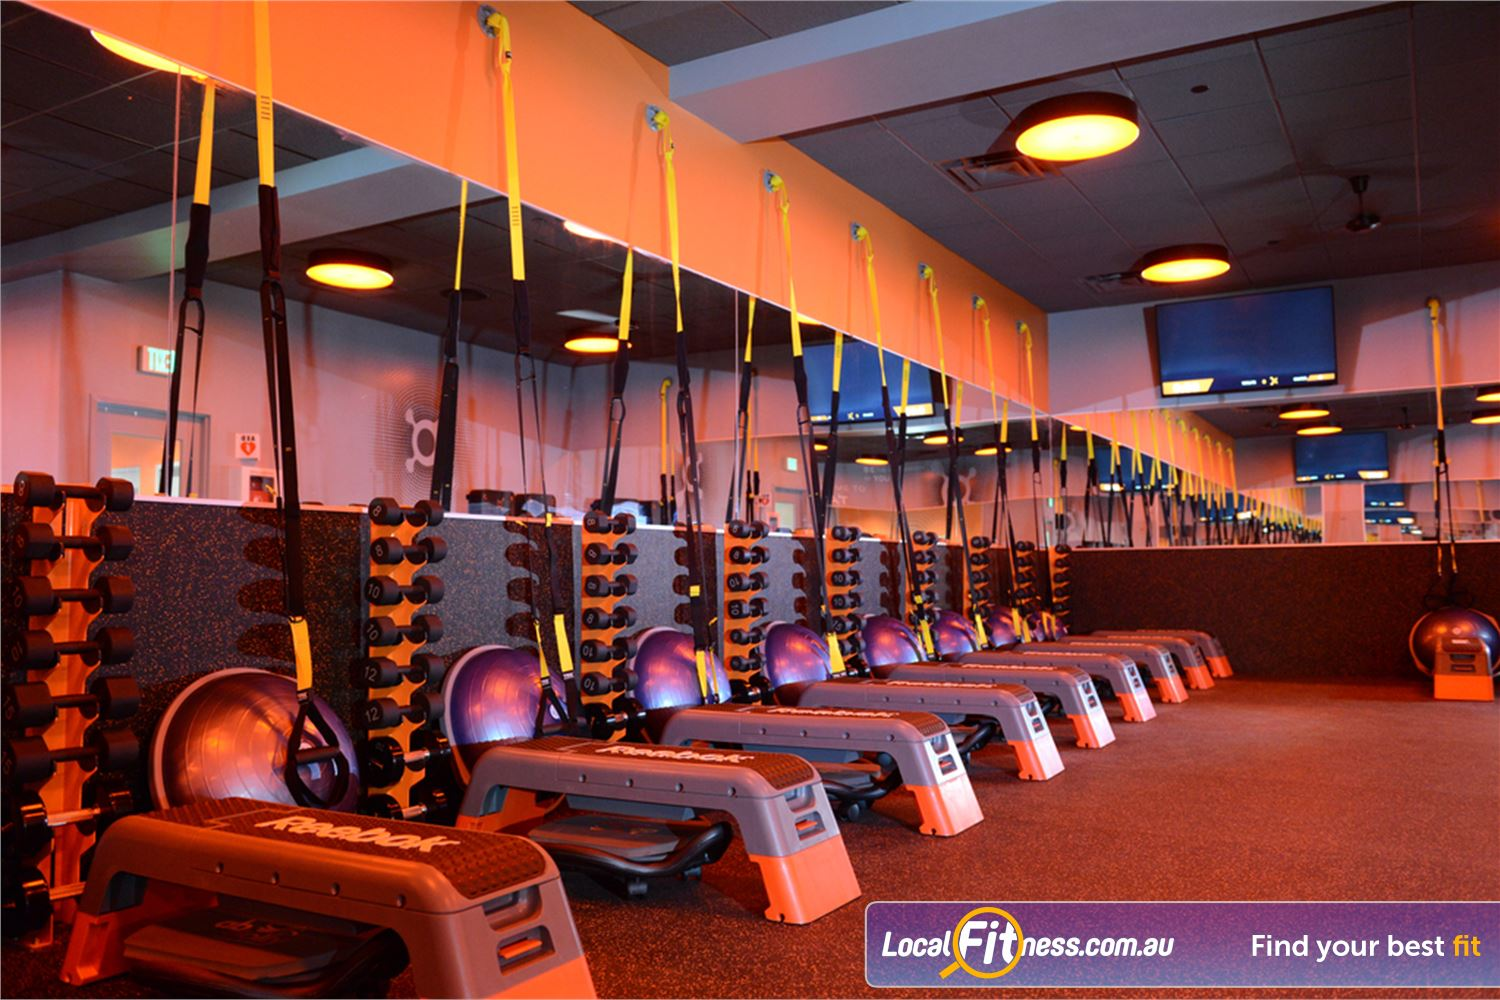 Orangetheory Fitness Hawthorn Welcome to Orangetheory Hawthorn - coach-inspired group workouts.